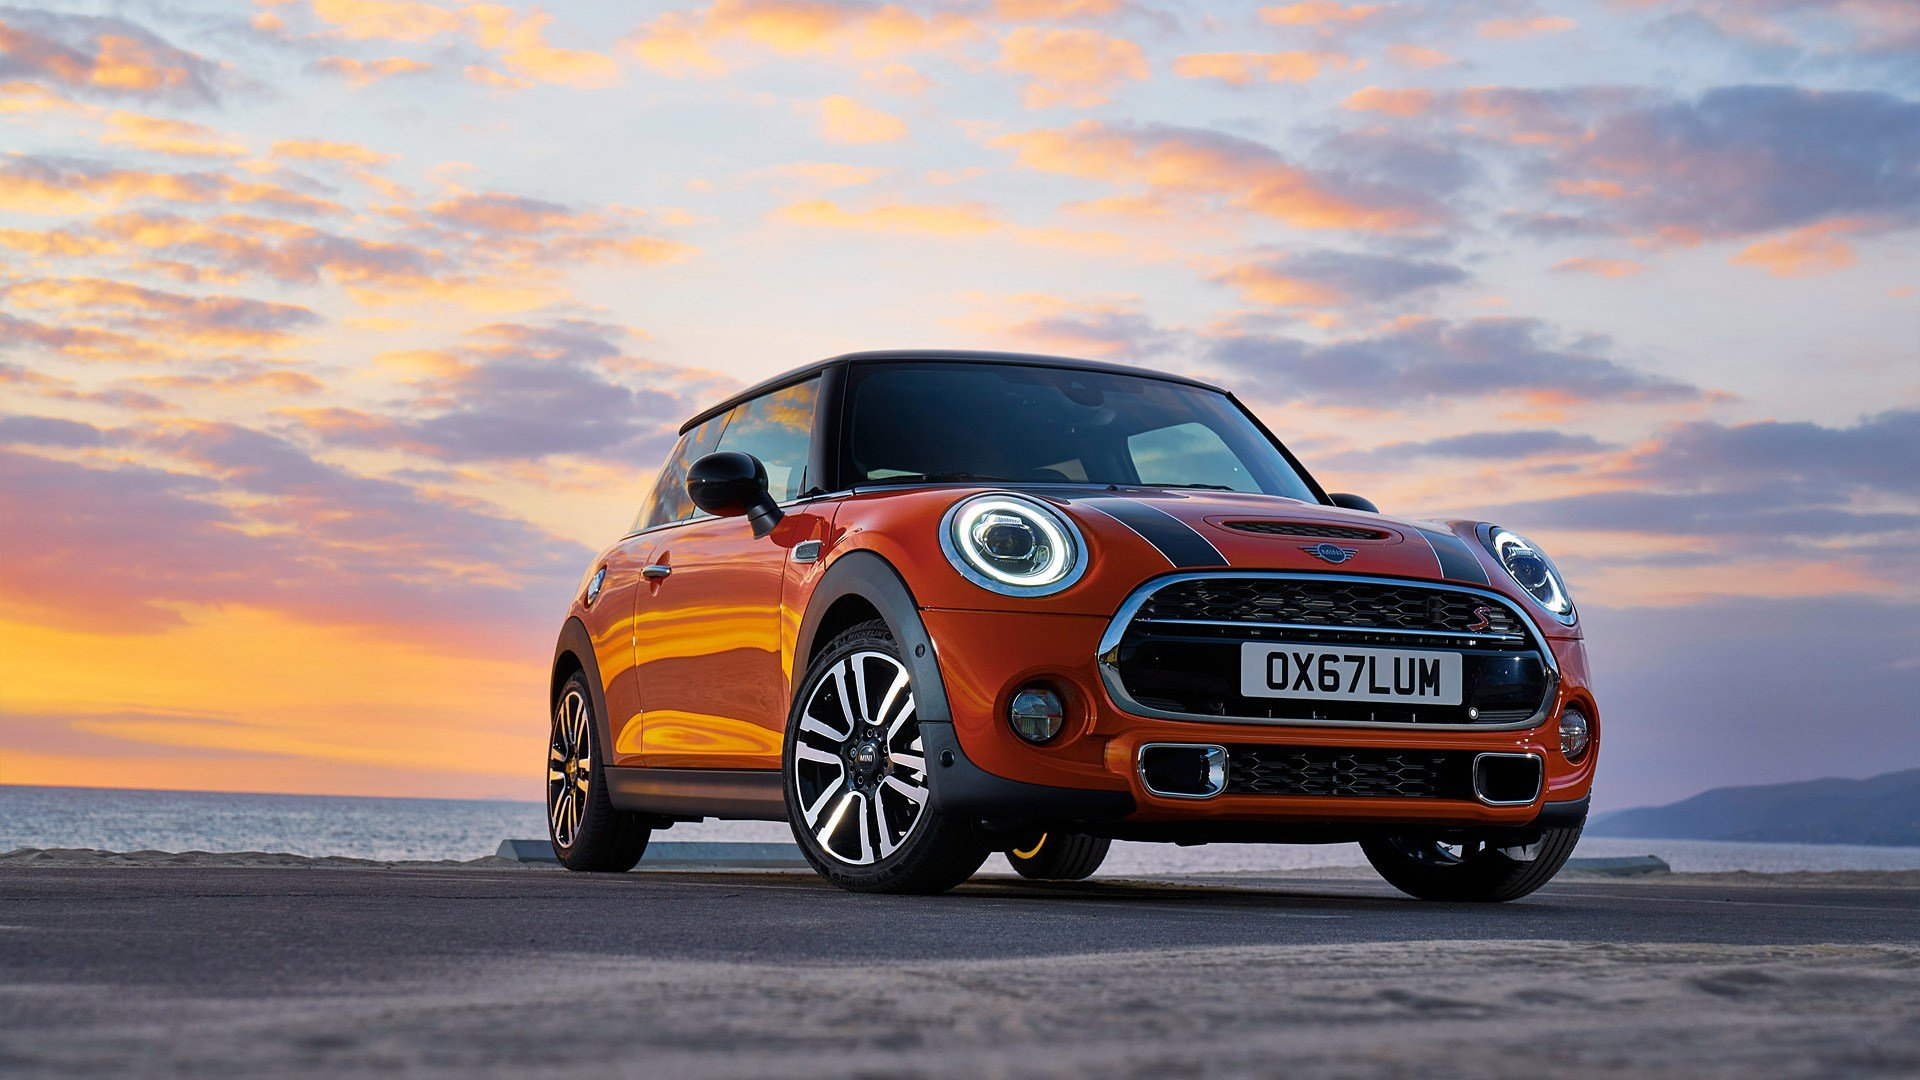 Latest 2018 Mini Cooper S Wallpapers Hd Images Wsupercars Free Download